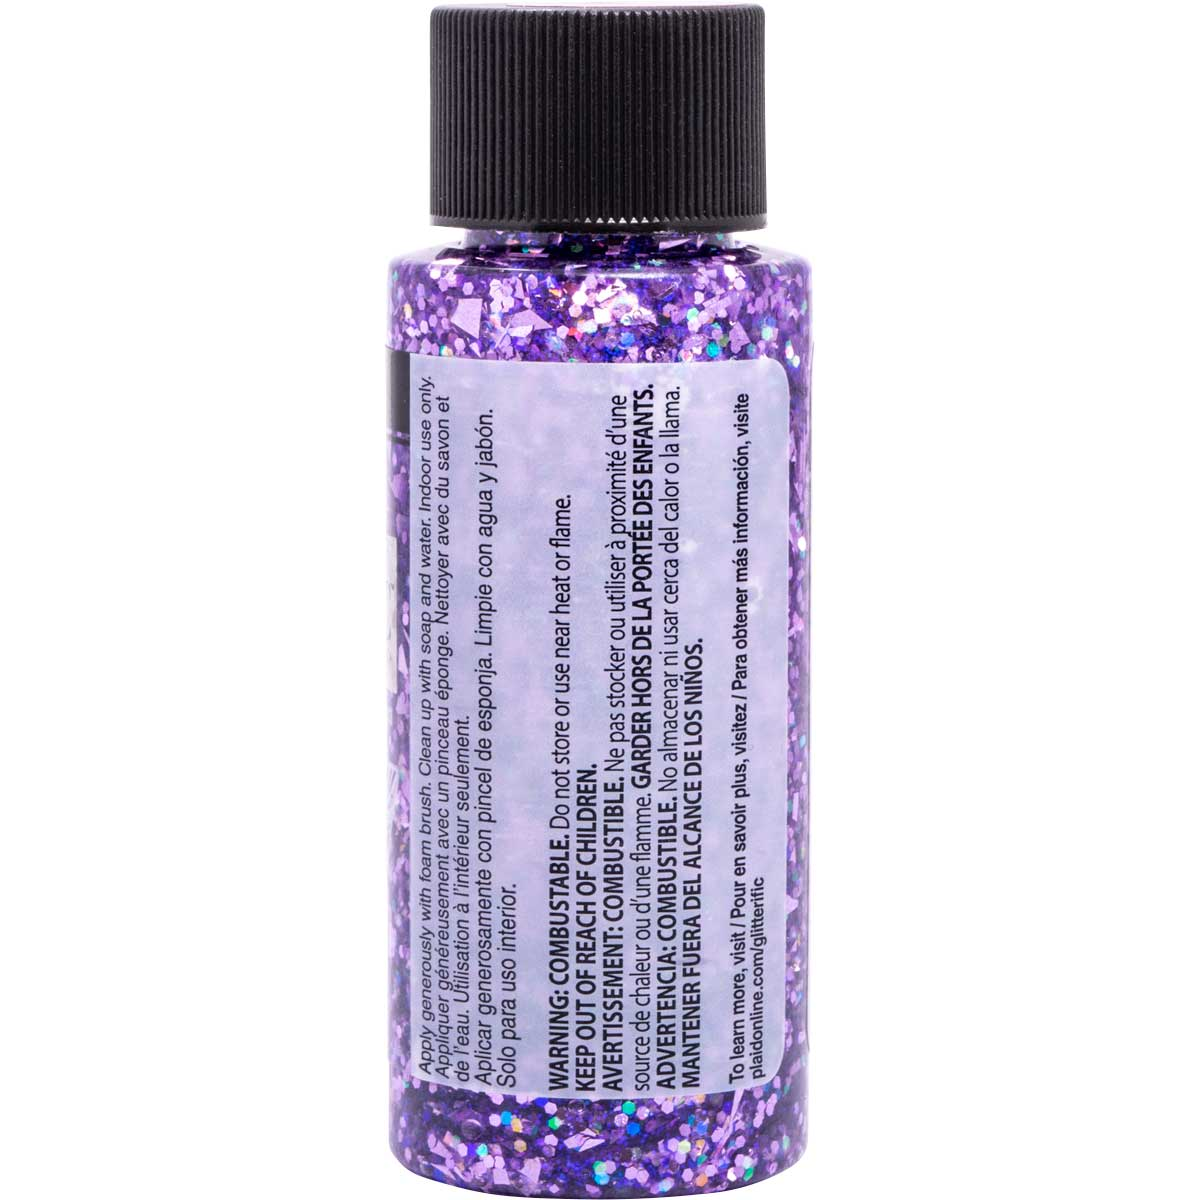 FolkArt ® Glitterific™ Acrylic Paint - Purple, 2 oz.